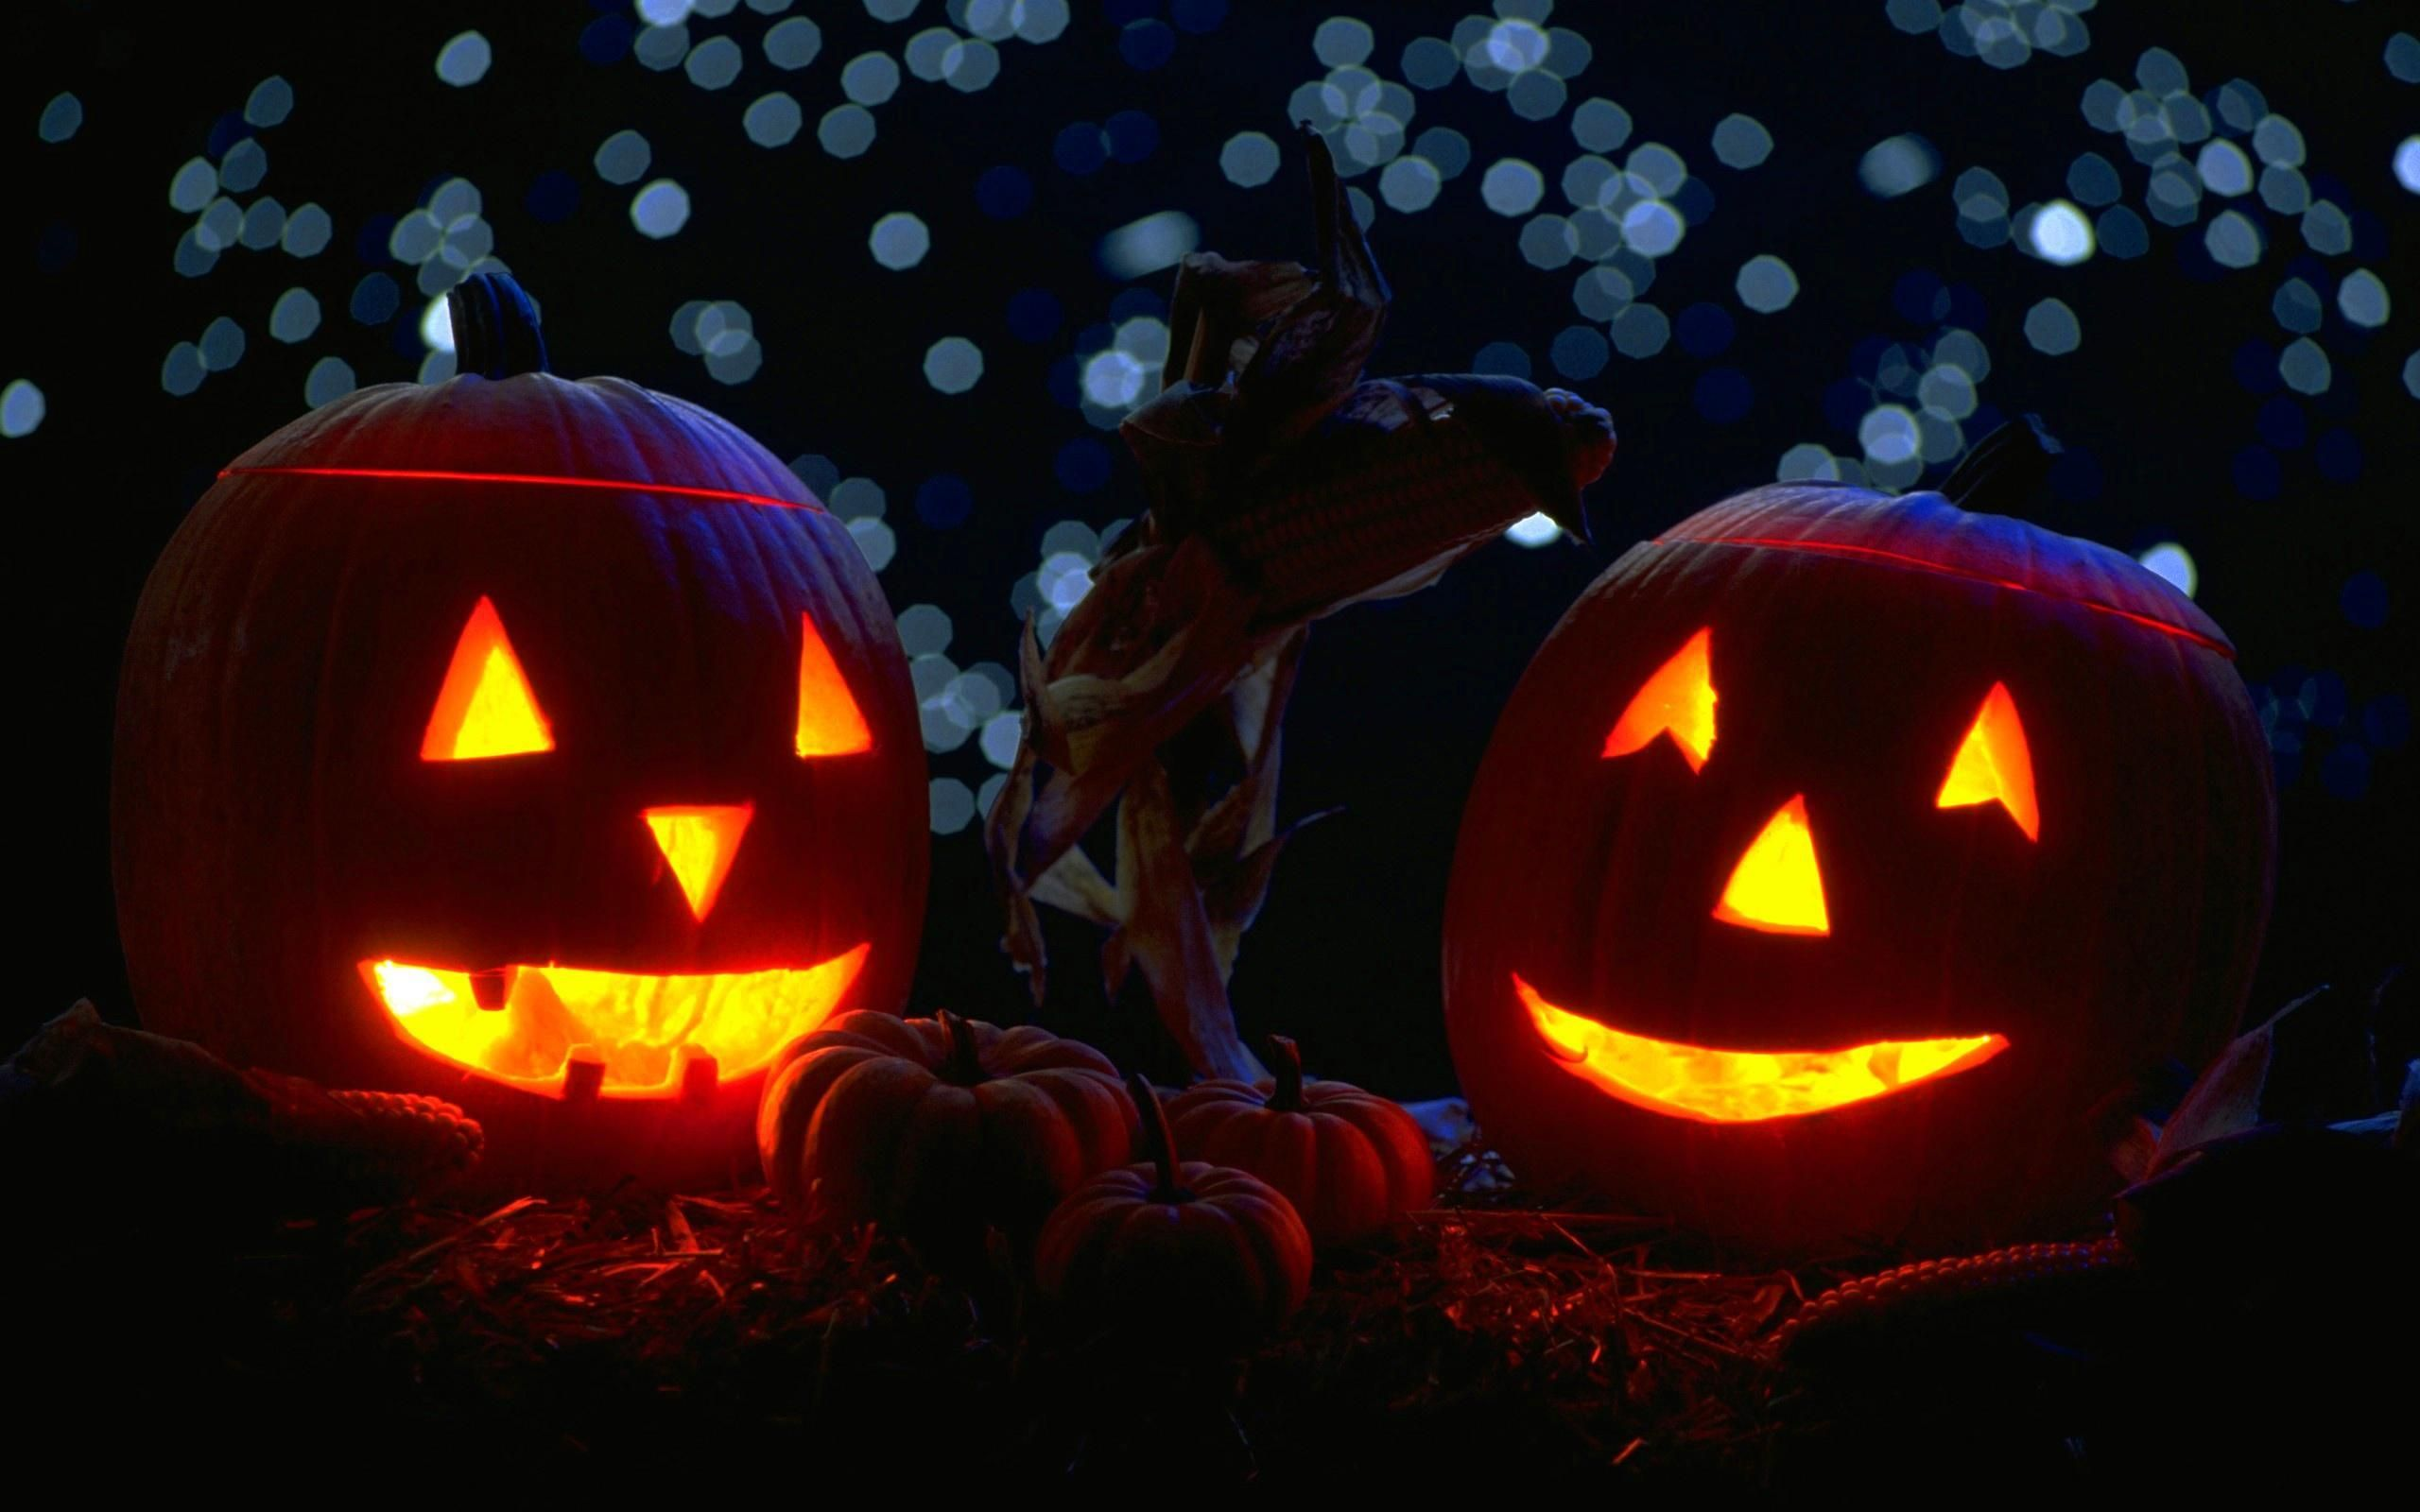 Watch And Enjoy Our Latest Collection Of Halloween Pumpkin Hd Wallpapers For Your Desktop Smartphone Or Tablet These Are